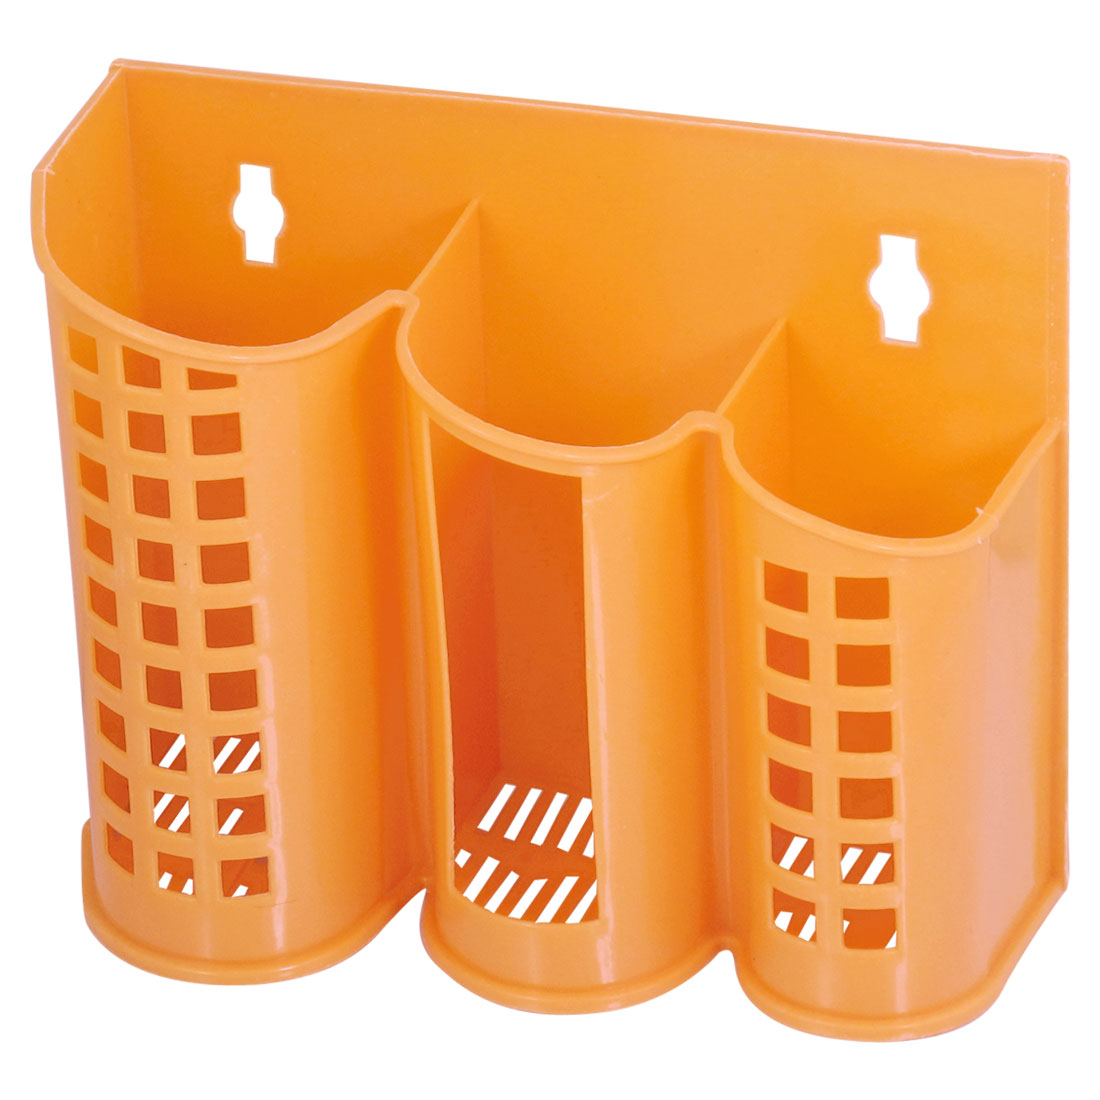 Kitchen 3 Compartment Plastic Perforated Chopsticks Case Orange